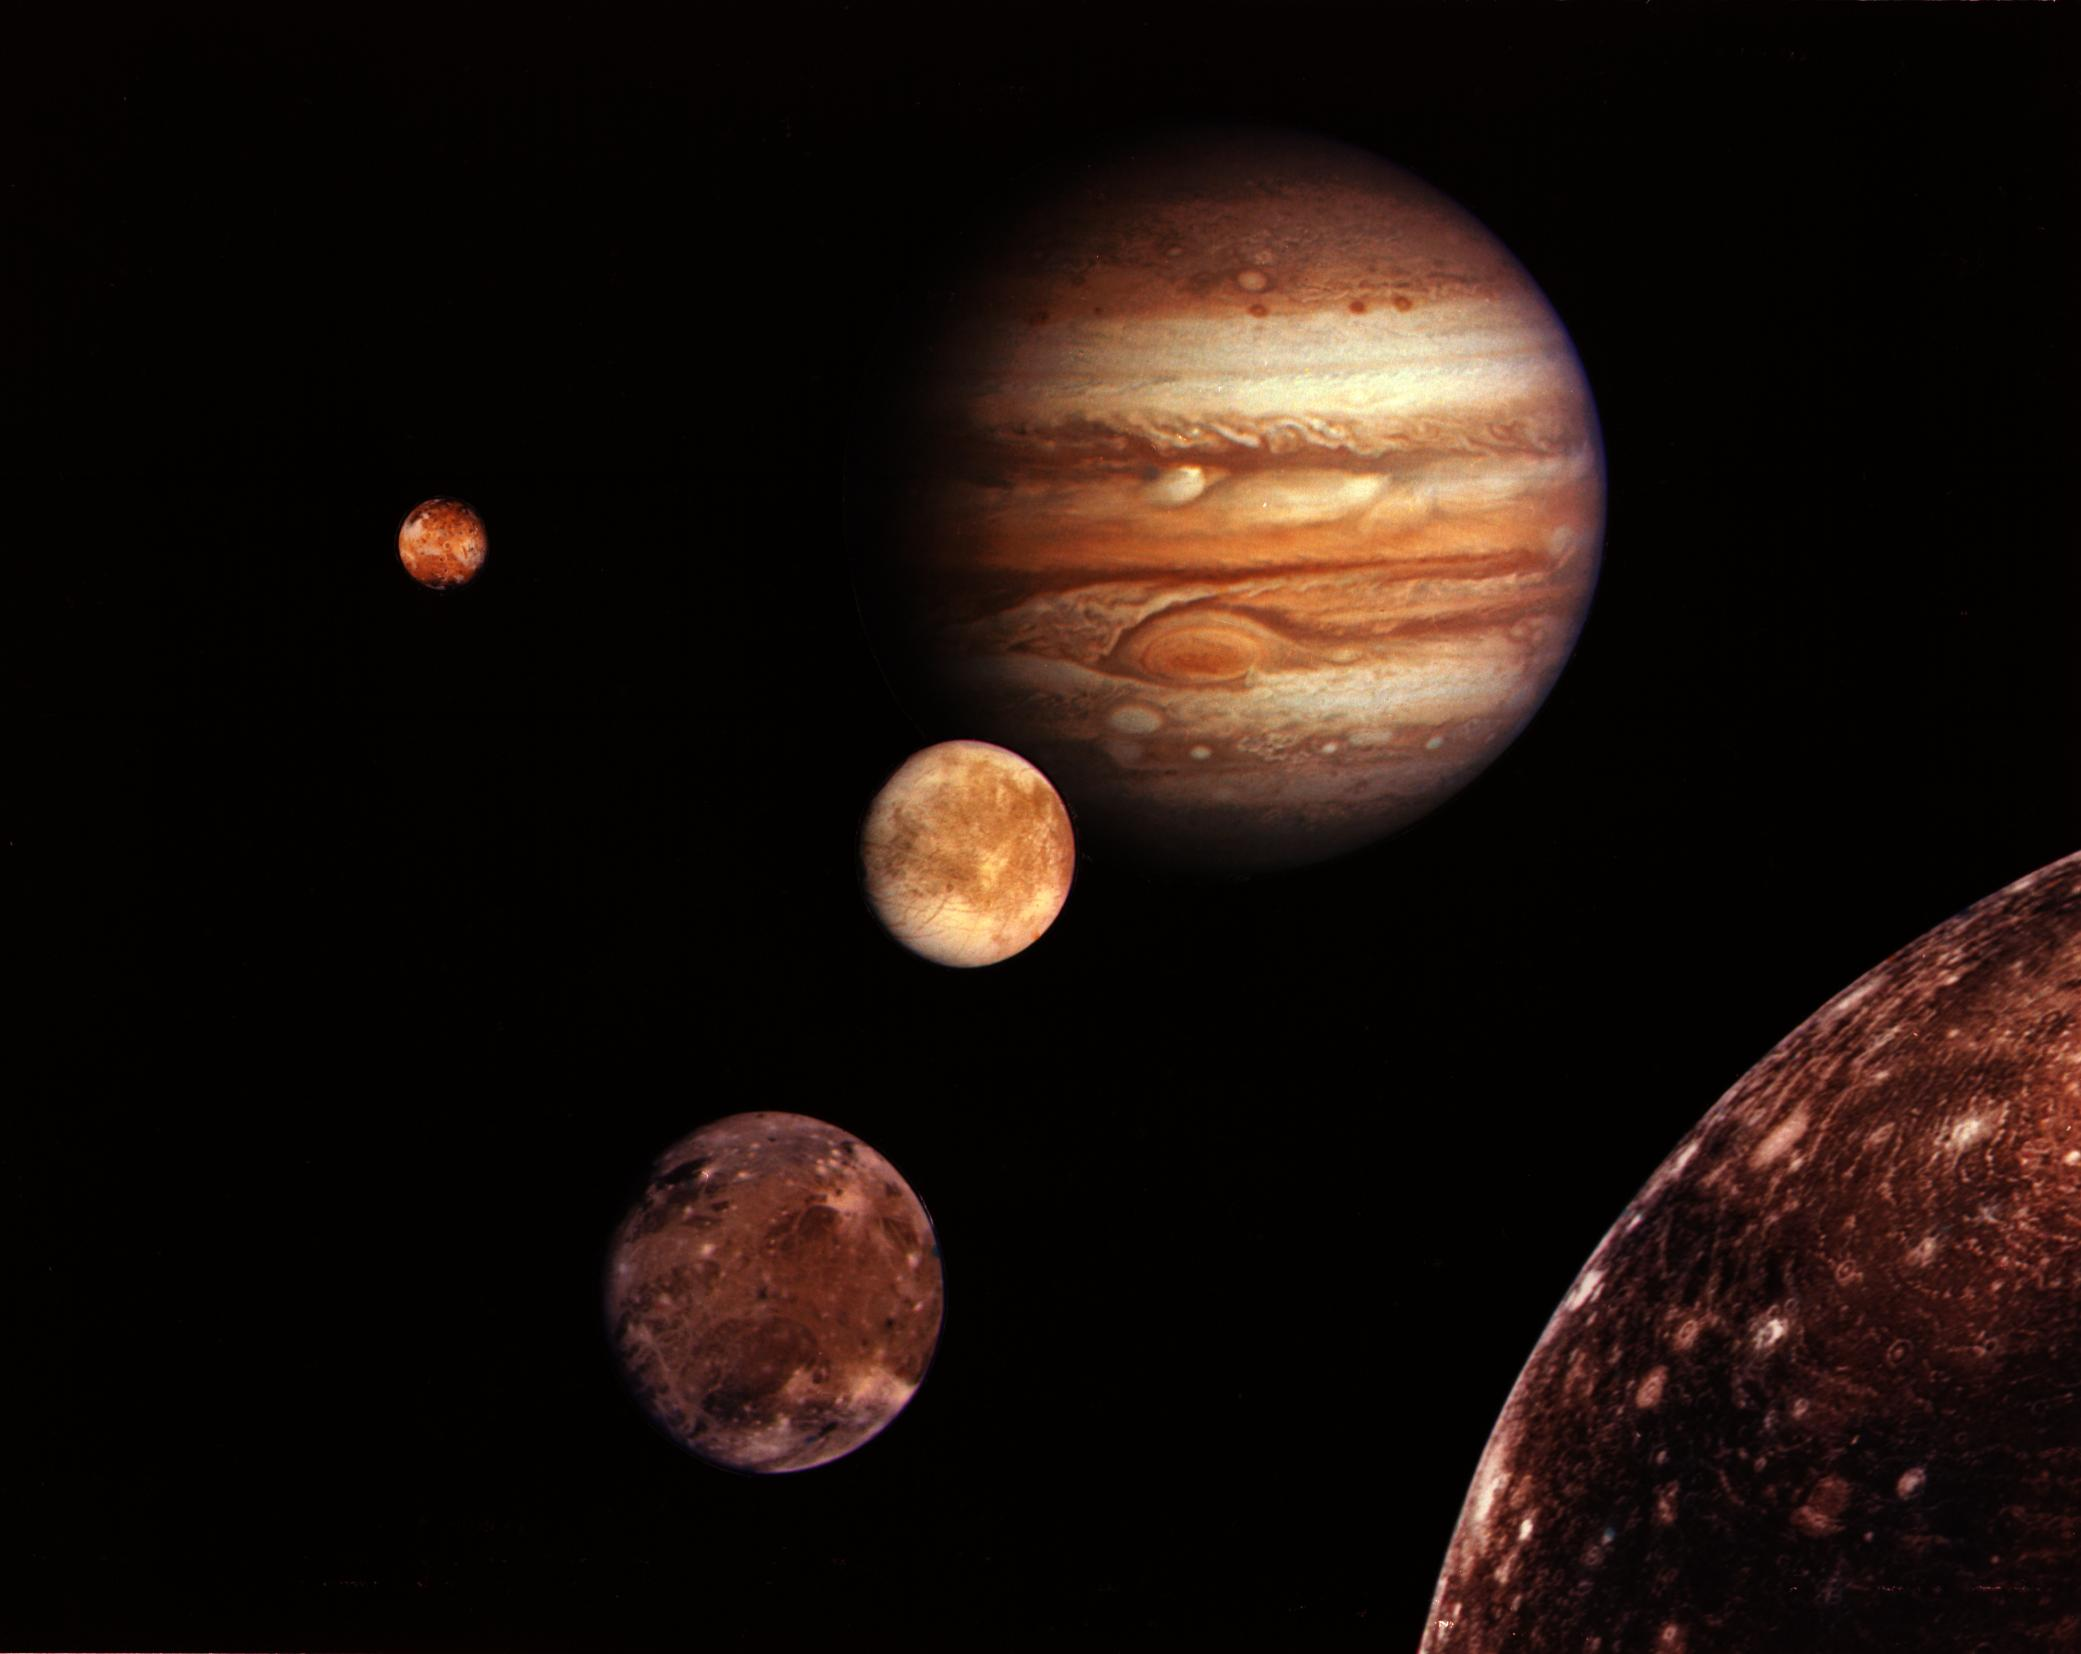 Life from Earth Could Have Hitched Ride to Moons of Jupiter, Saturn